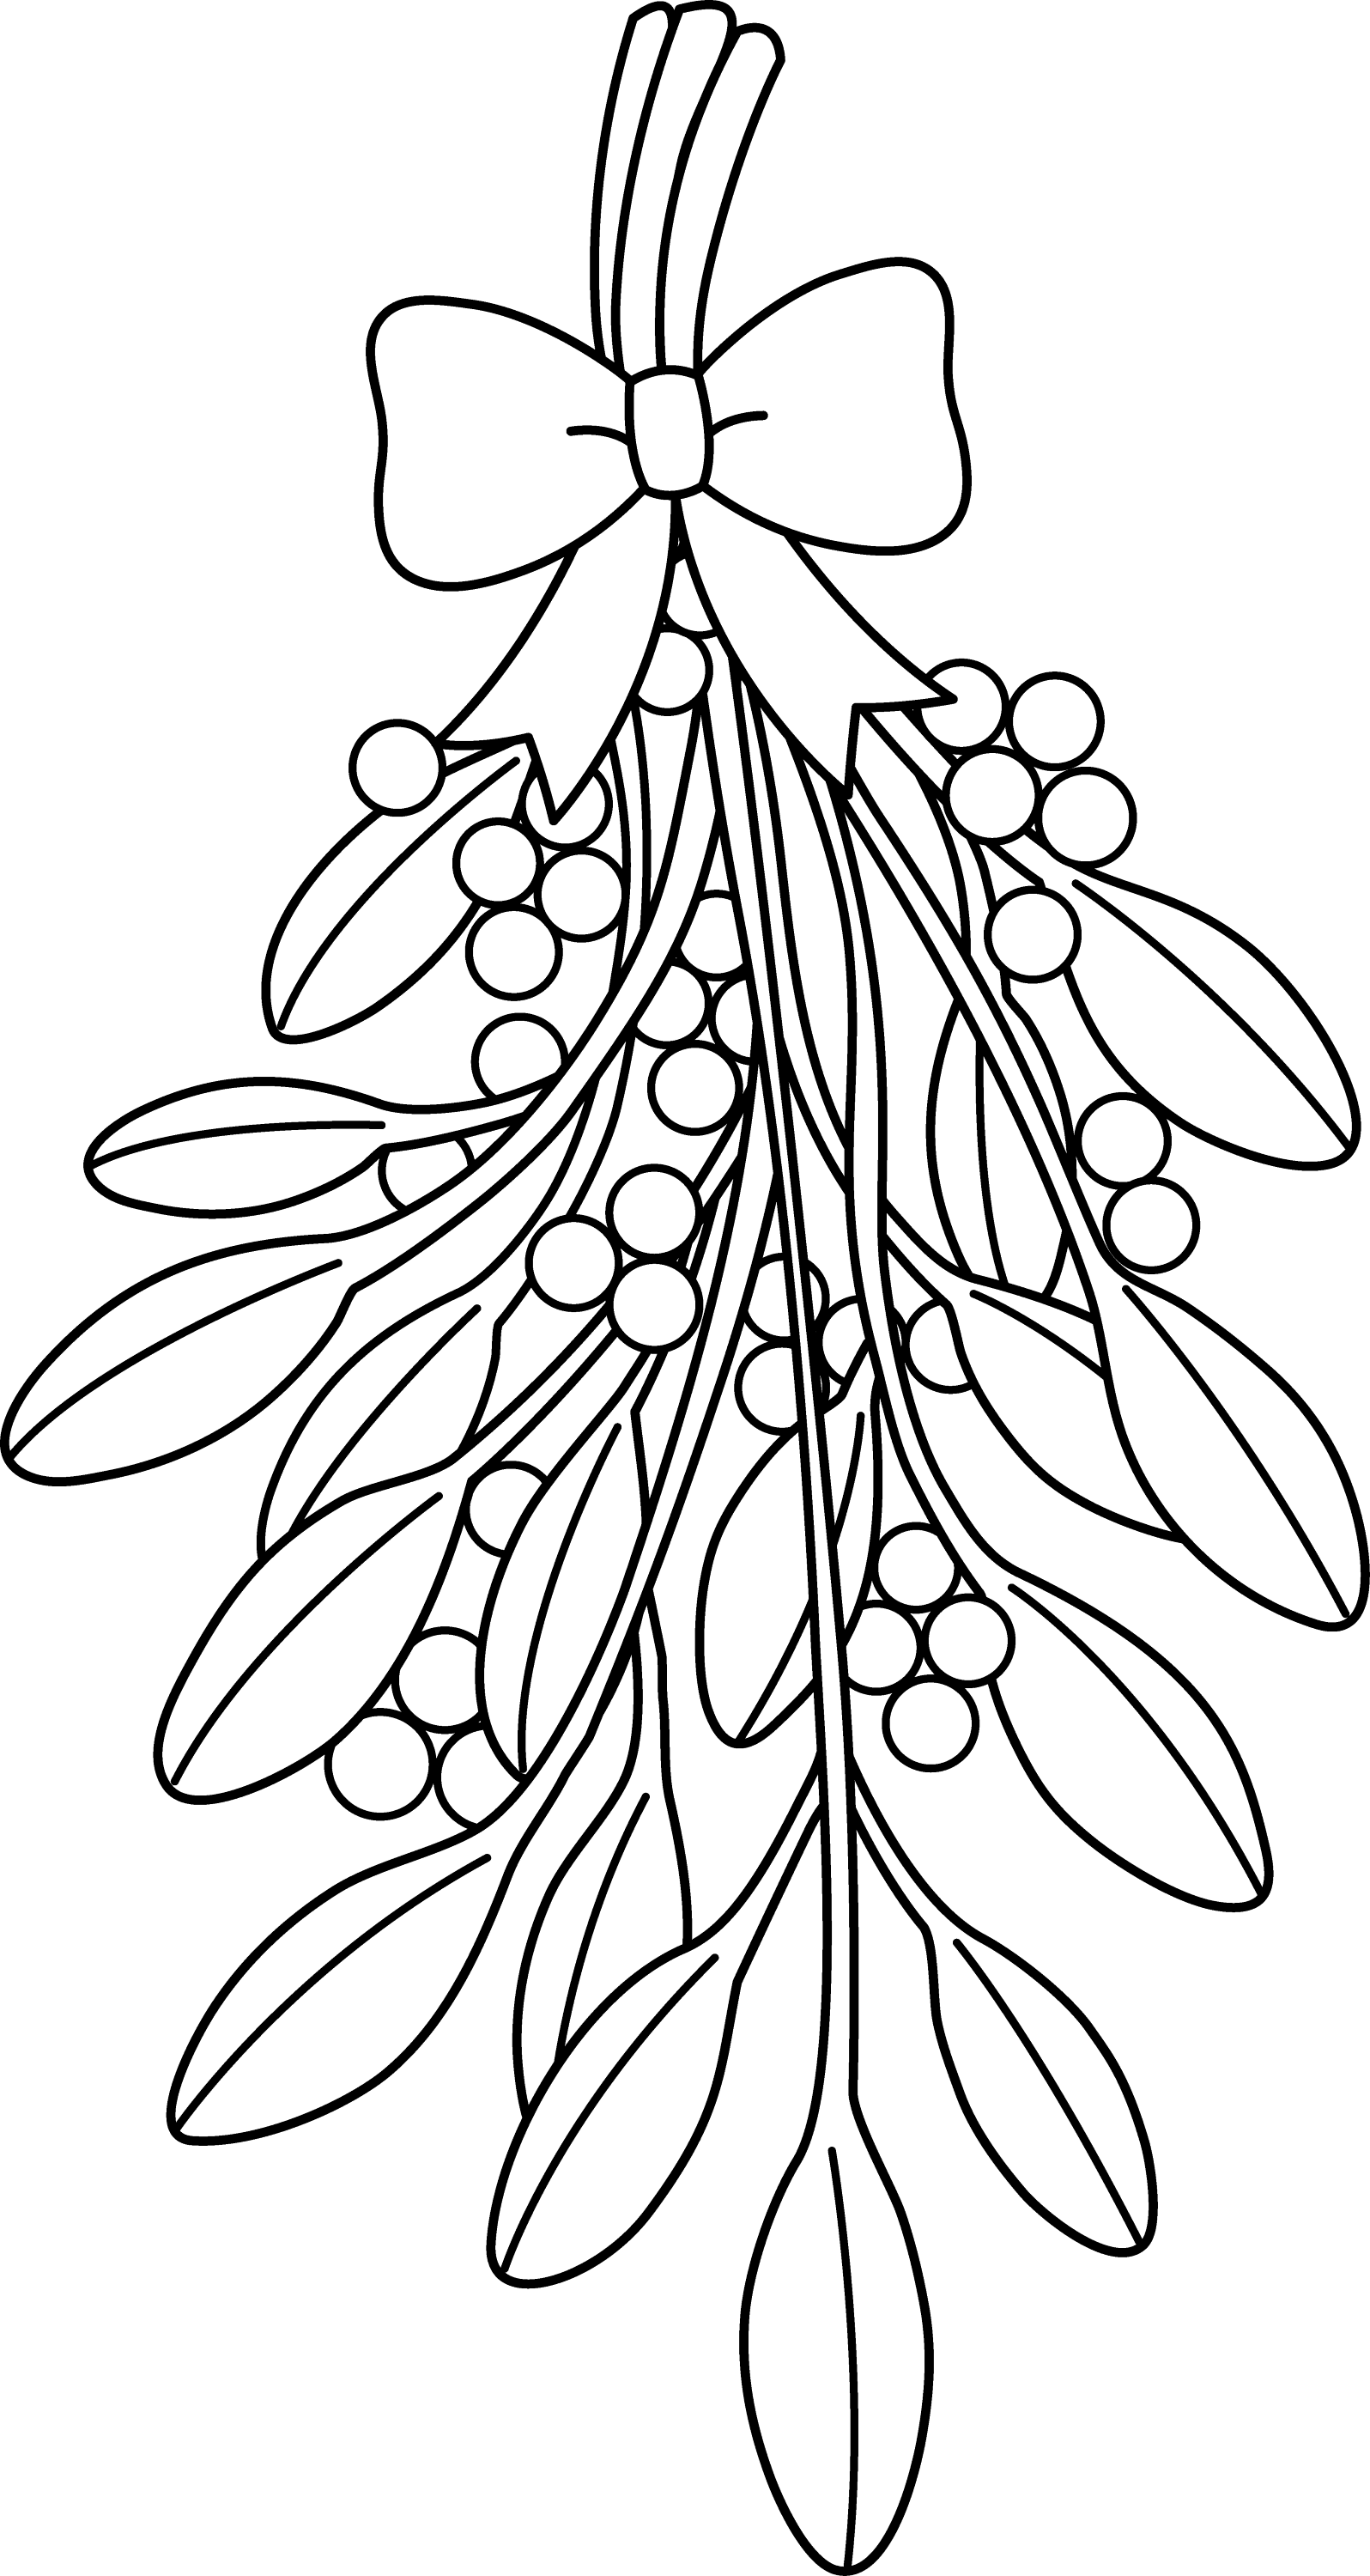 mistletoe coloring pages christmas mistletoe drawing at getdrawings free download pages coloring mistletoe